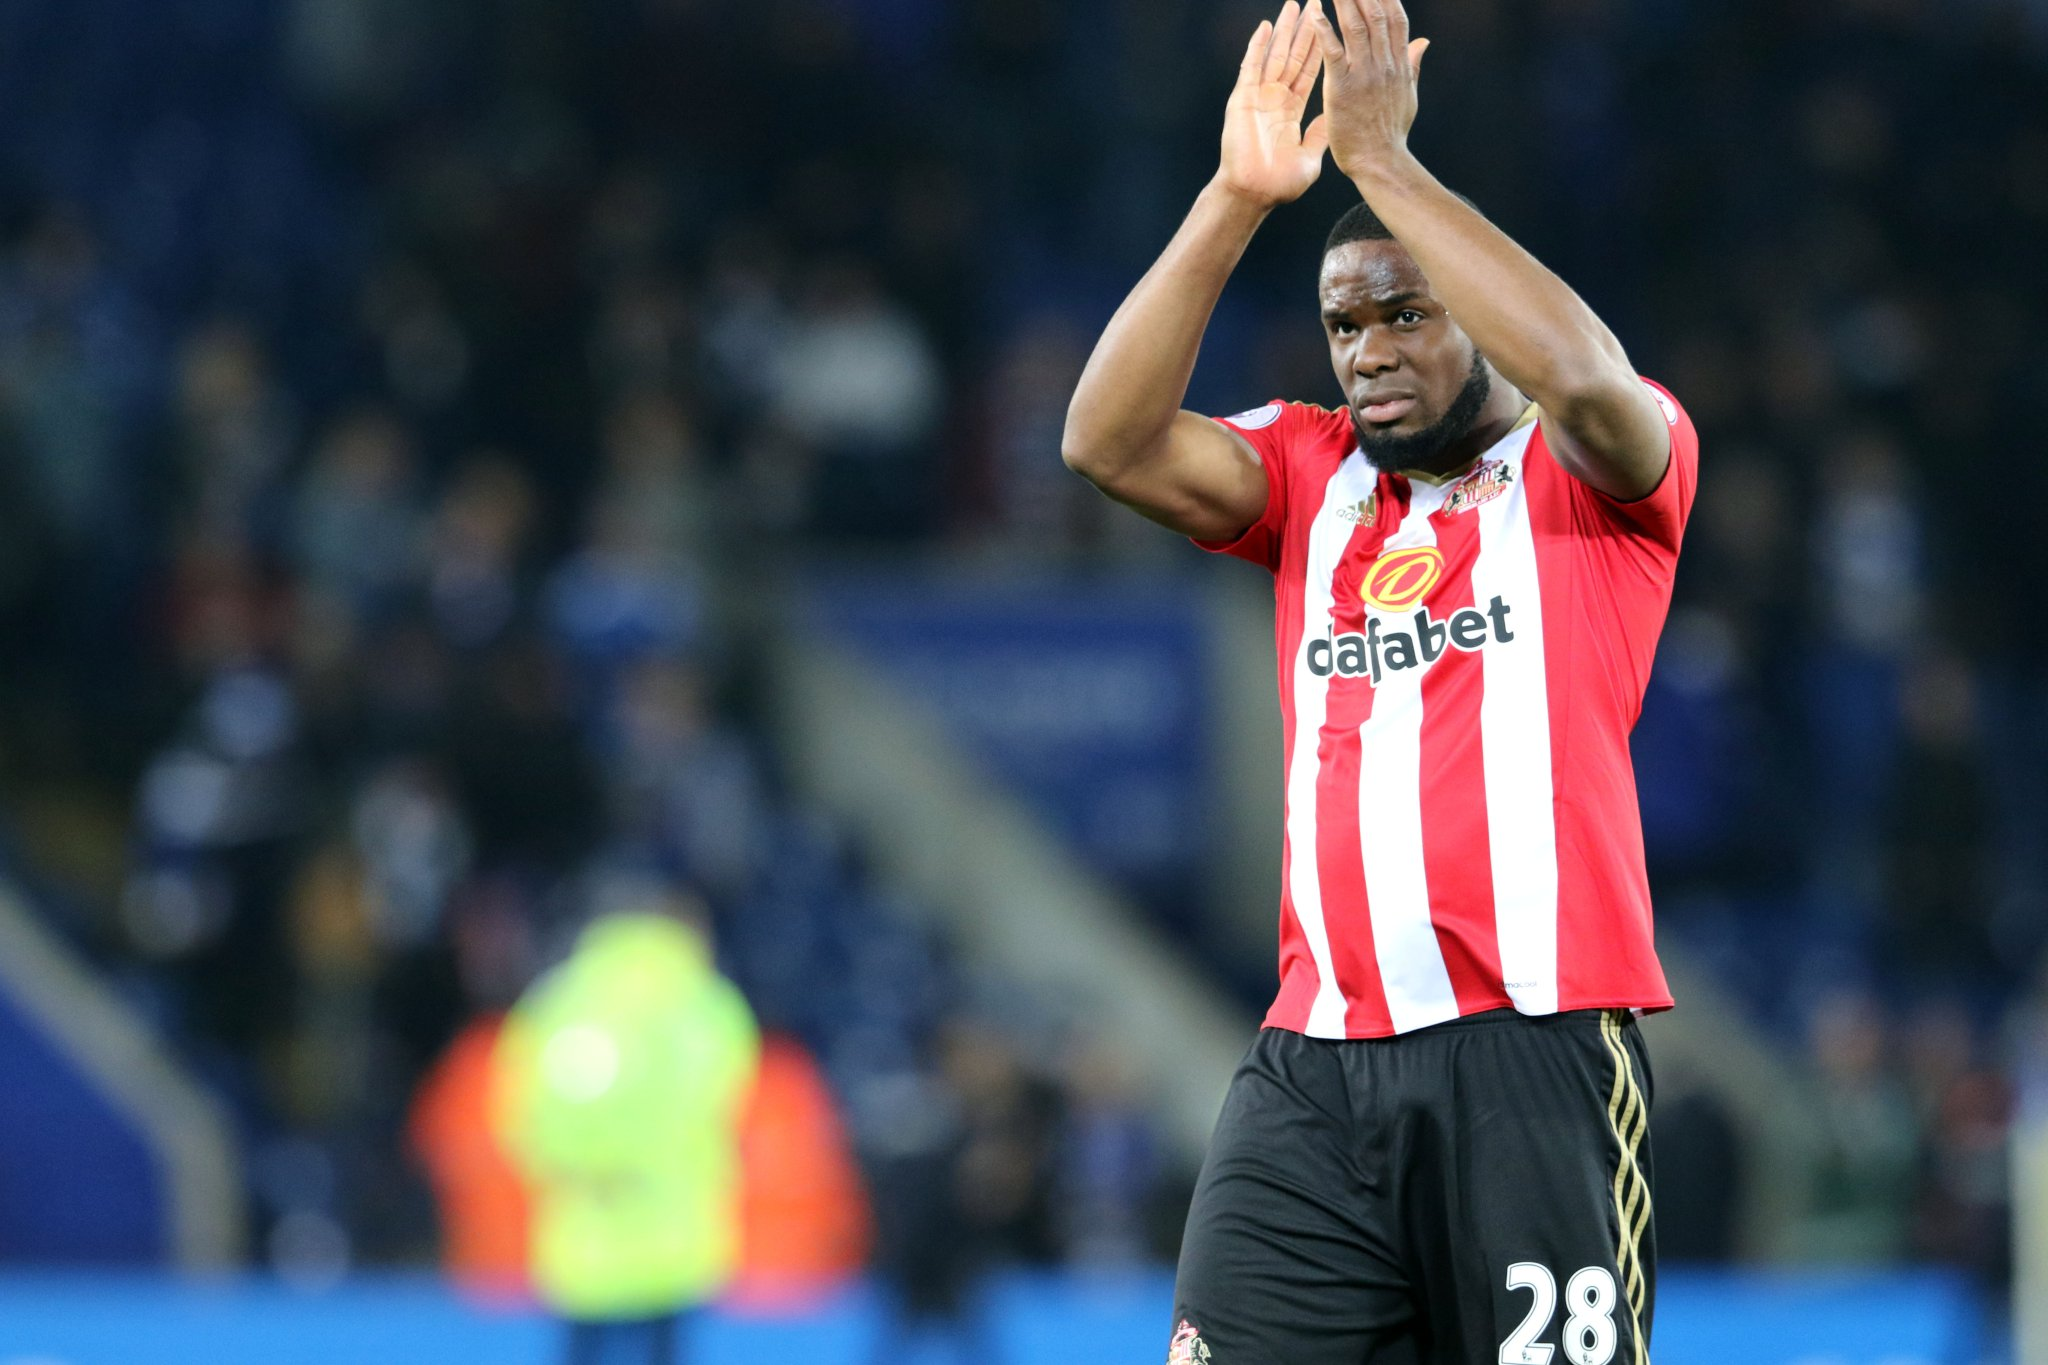 Anichebe Doubtful For Arsenal Clash As Moyes Eyes Upset